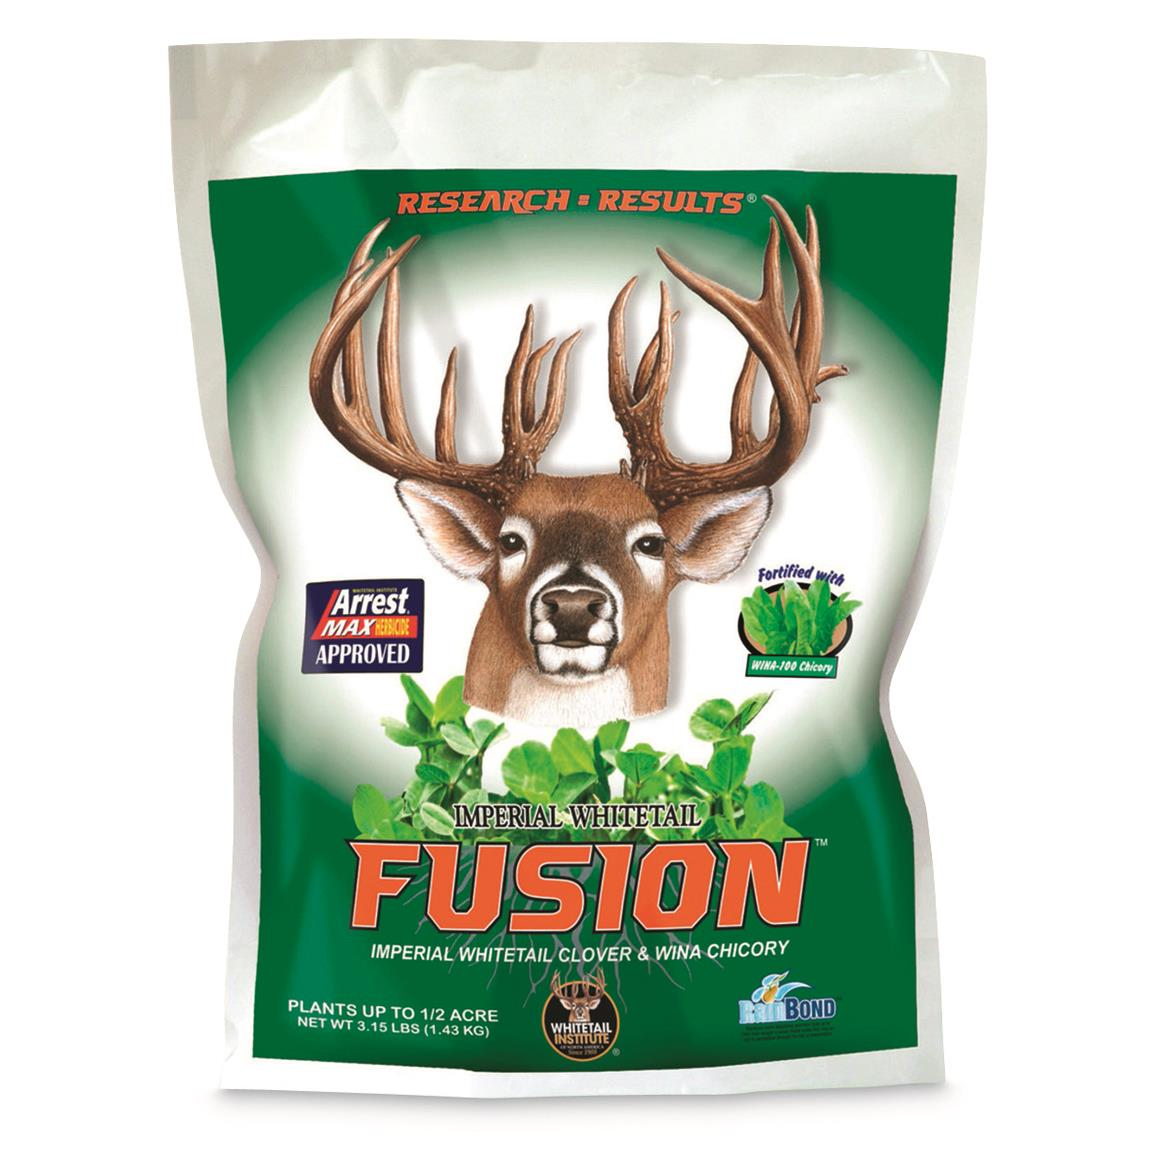 Whitetail Institute Imperial Whitetail Fusion Food Plot Seed, 3.15-lb. Bag